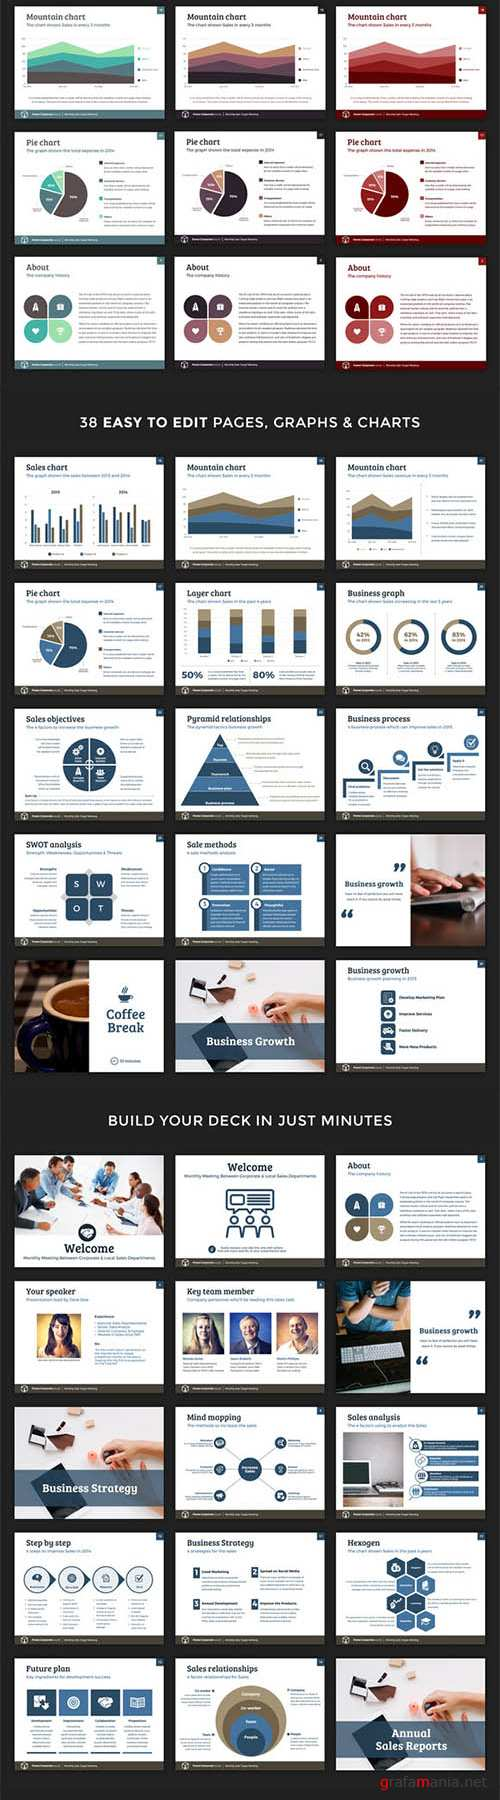 CM - Corporate PowerPoint Template V.1 196723